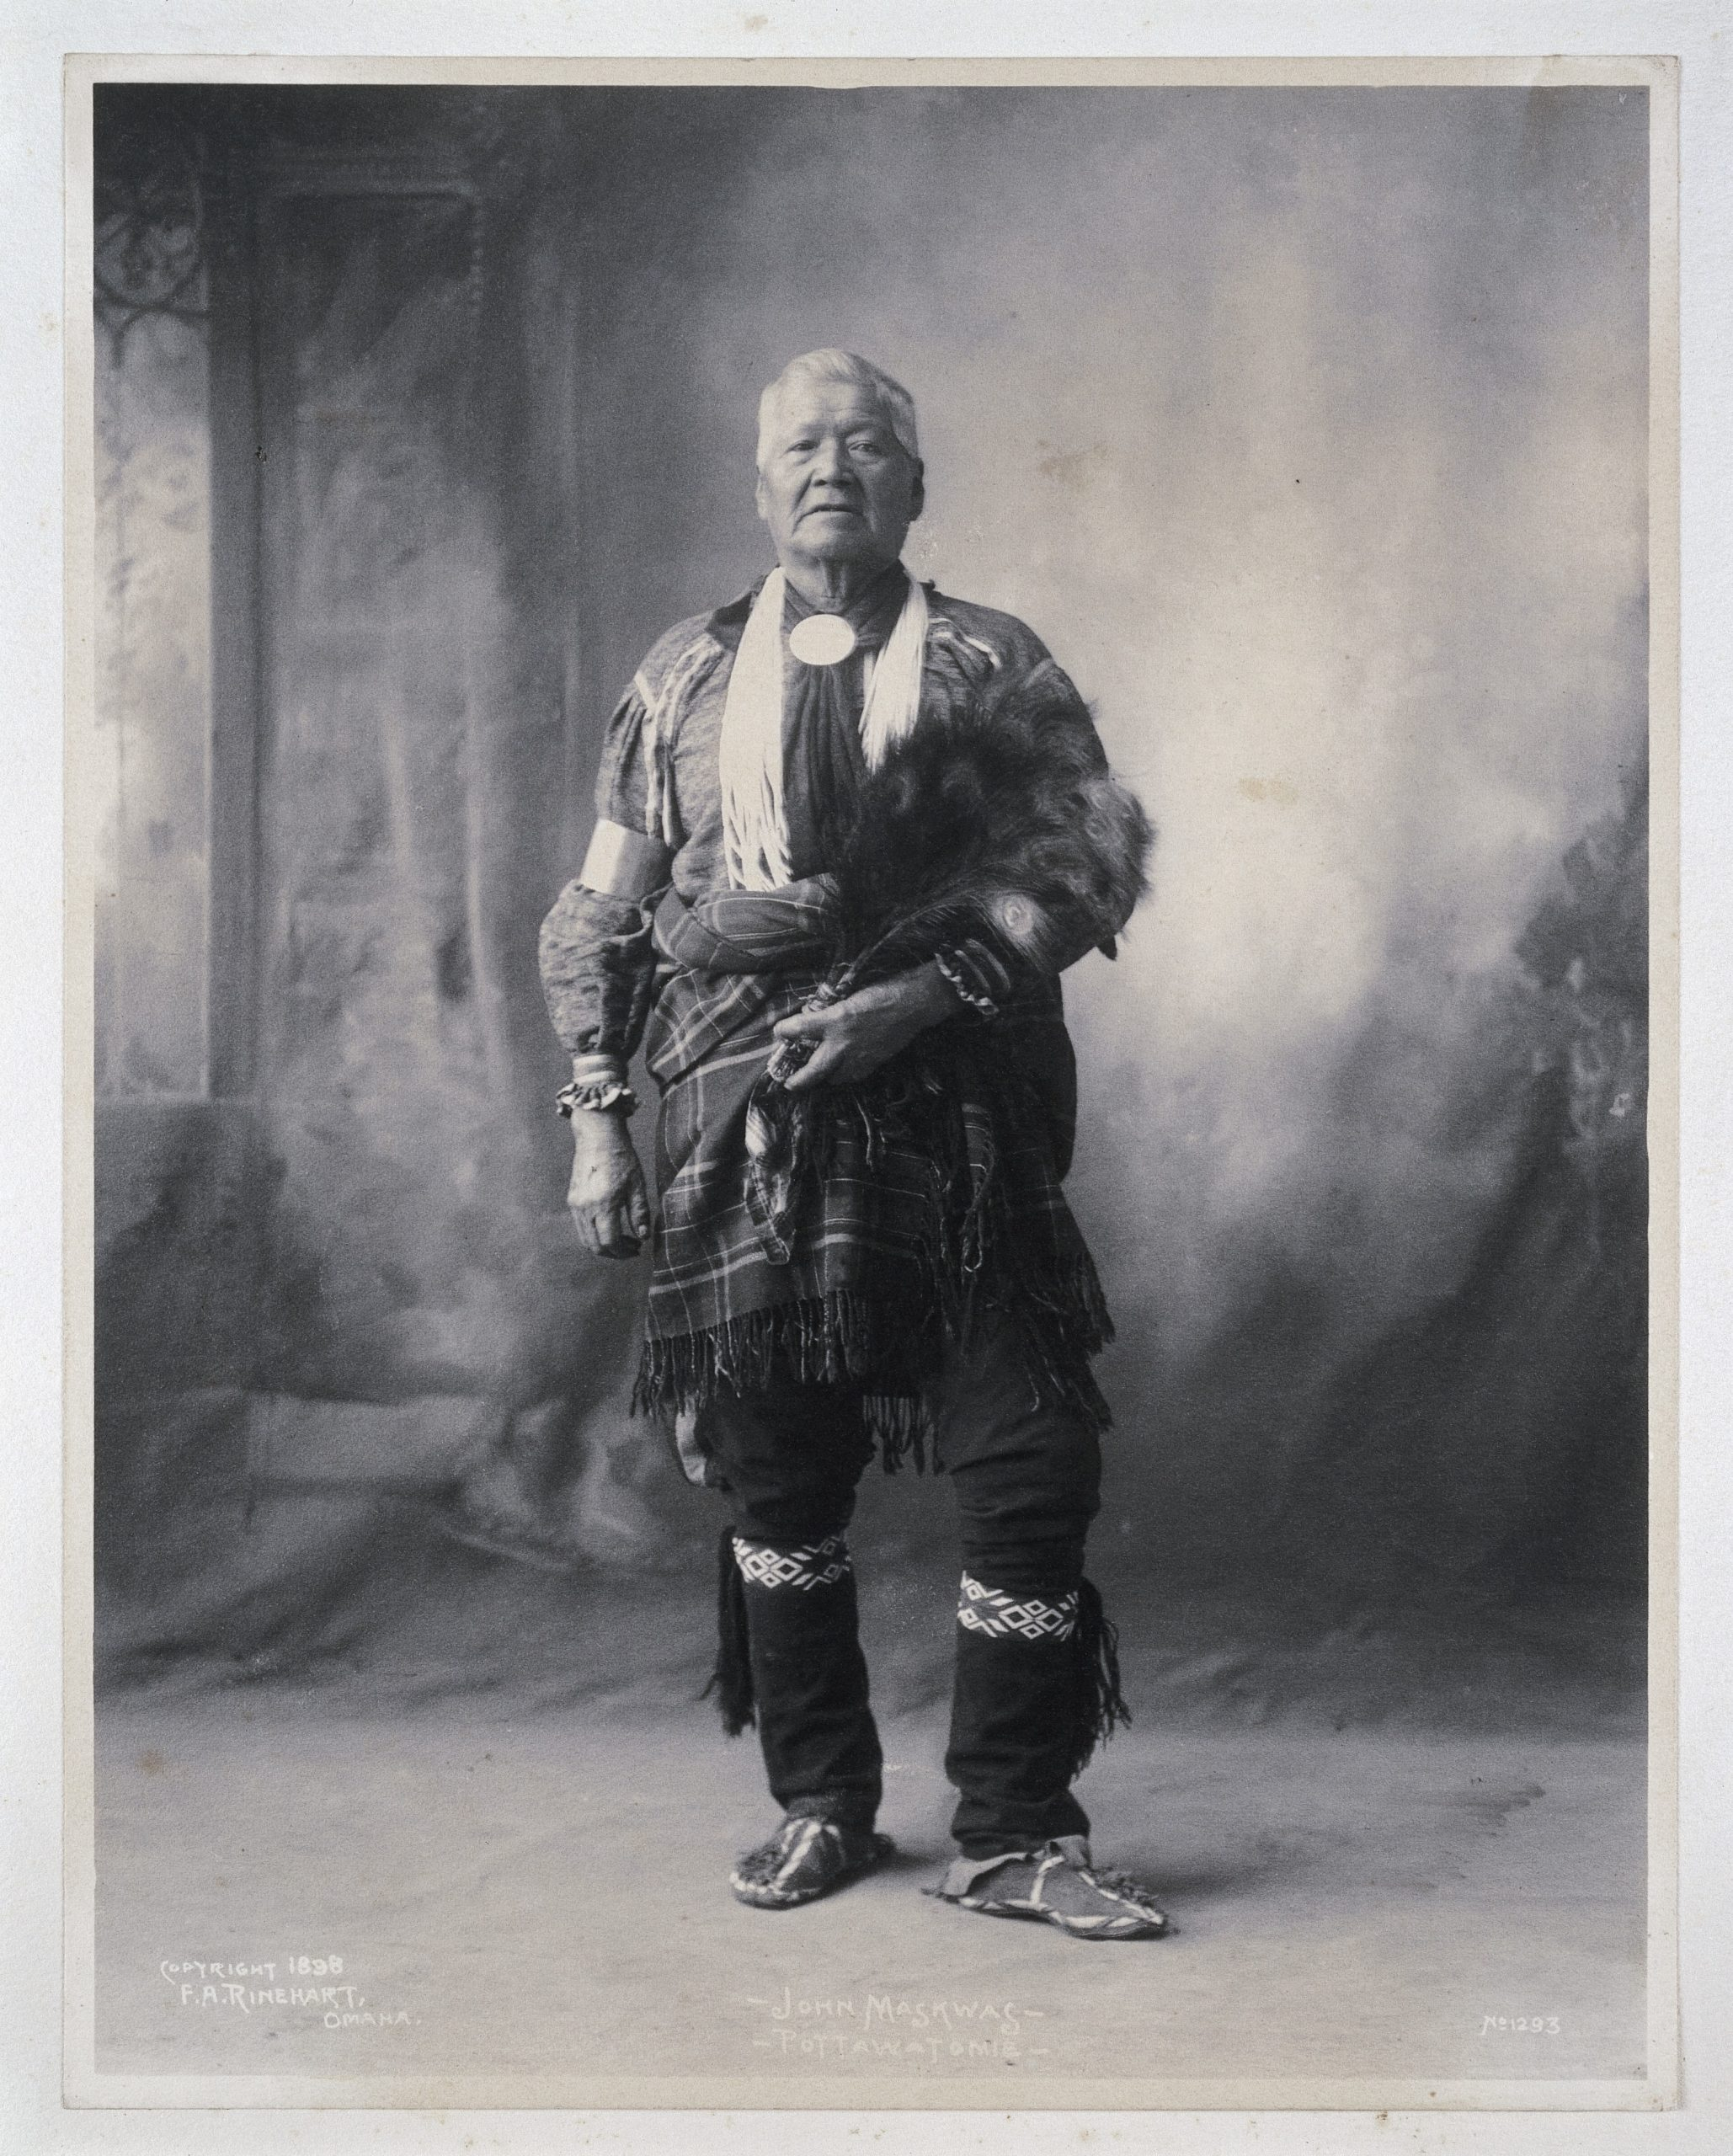 Portait of John Maskwas, a Potawatomi Indian,1898